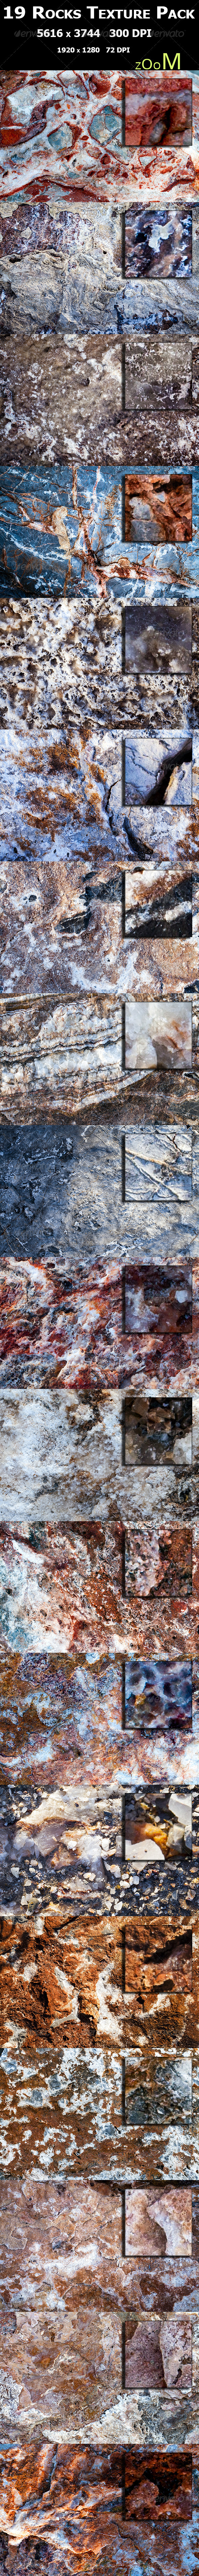 19 Rocks Texture Pack - Stone Textures